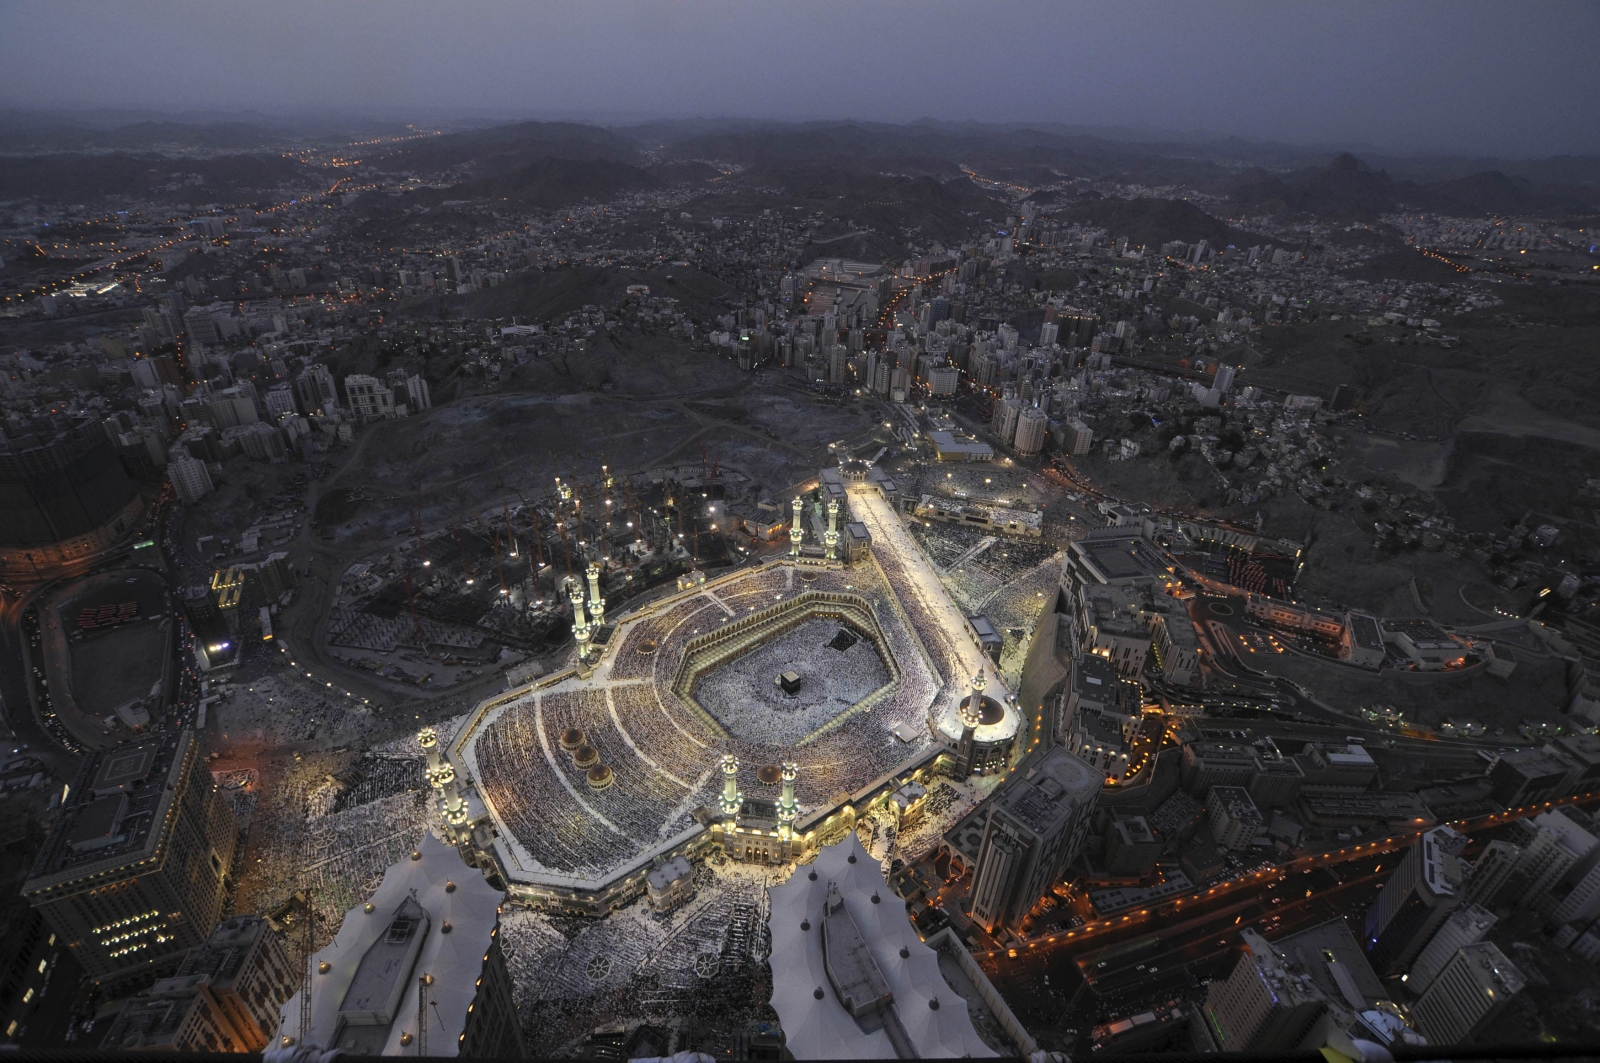 Mecca city Saudi Arabia